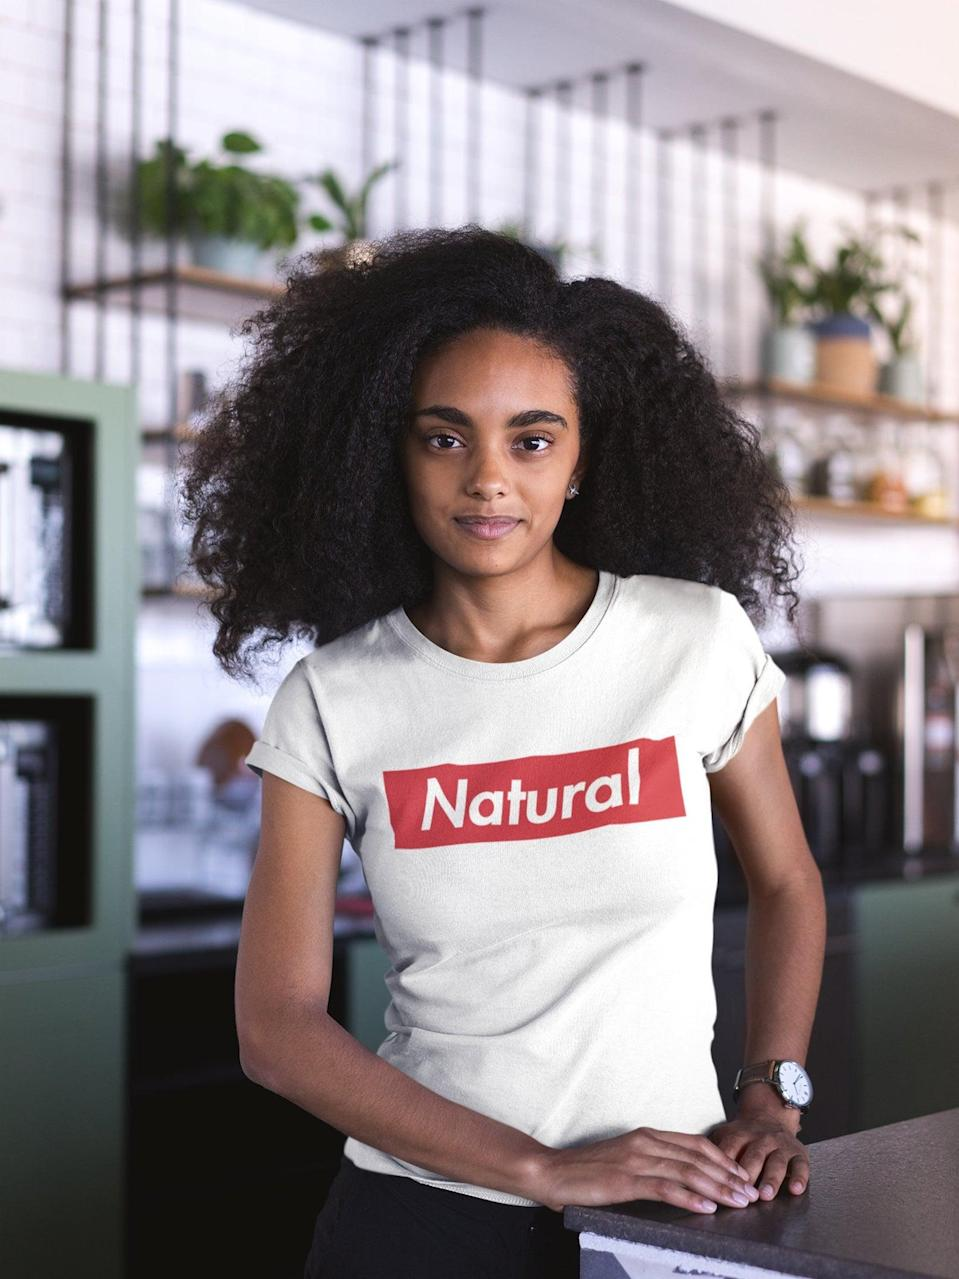 <p>Another shout-out to all the ladies who rock natural hair unapologetically. </p> <p><span>Ladies Tee: Natural</span> ($25)</p>